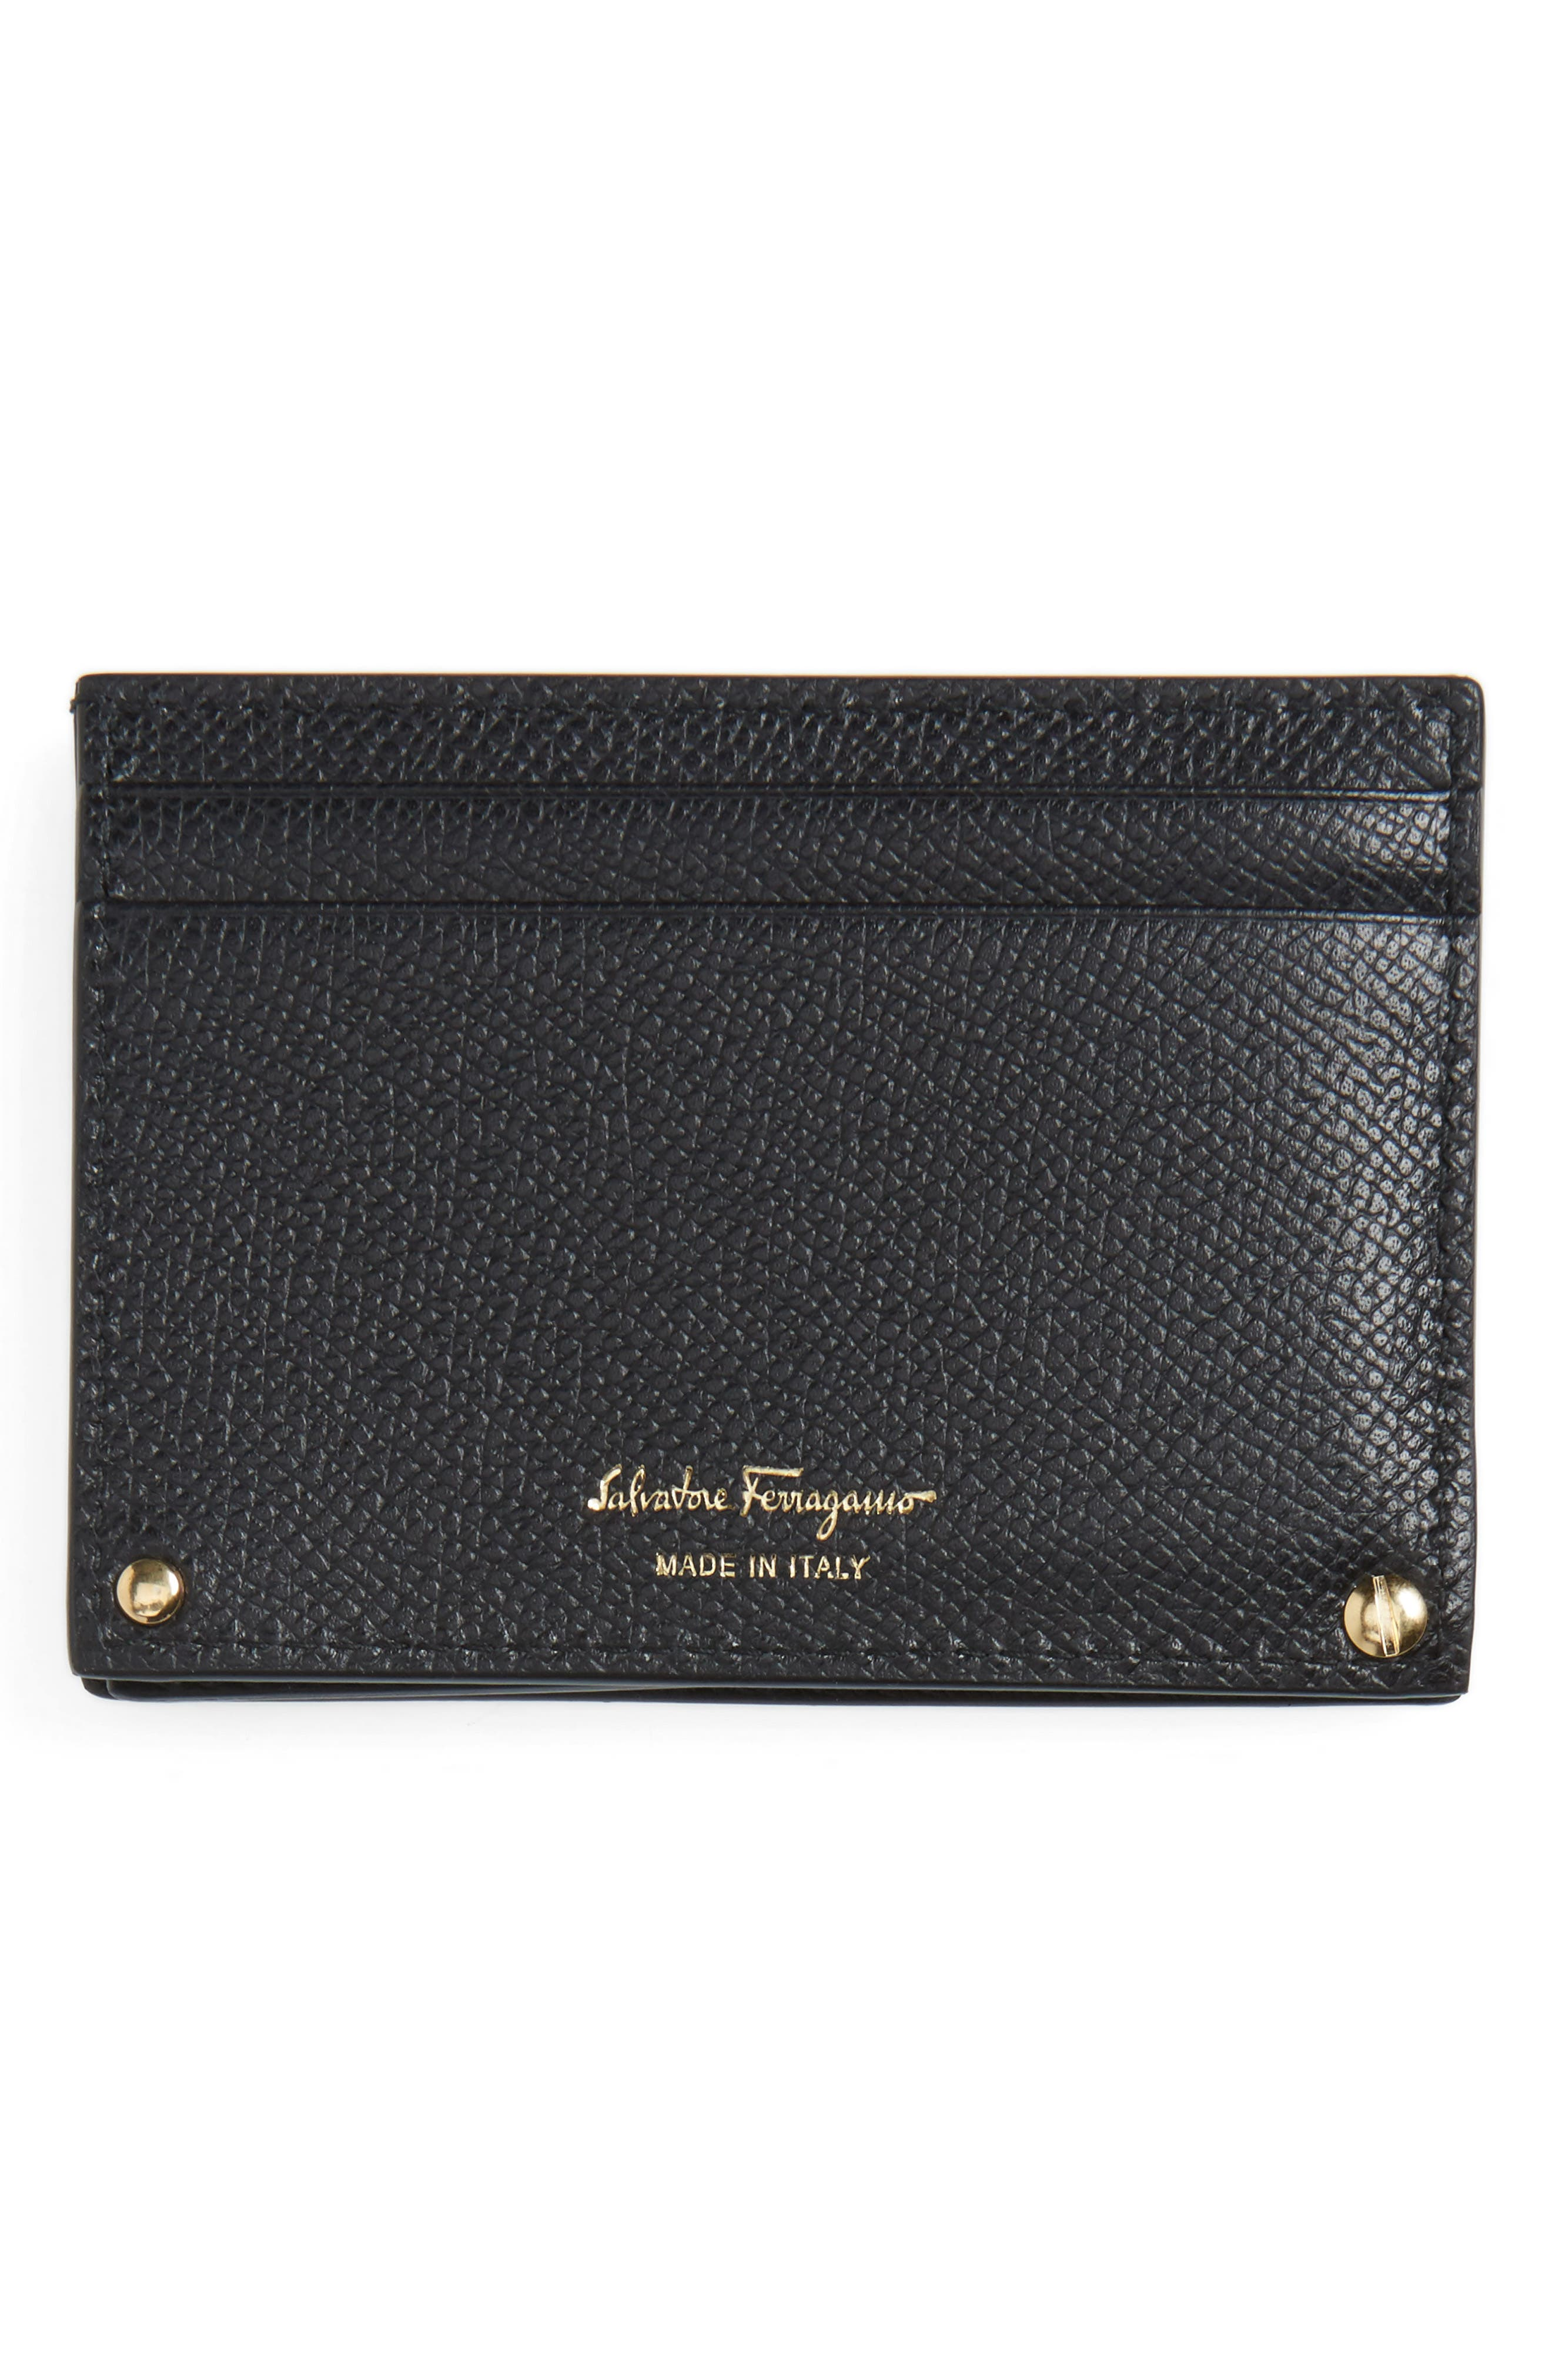 Gancio Leather Card Case,                             Alternate thumbnail 2, color,                             001